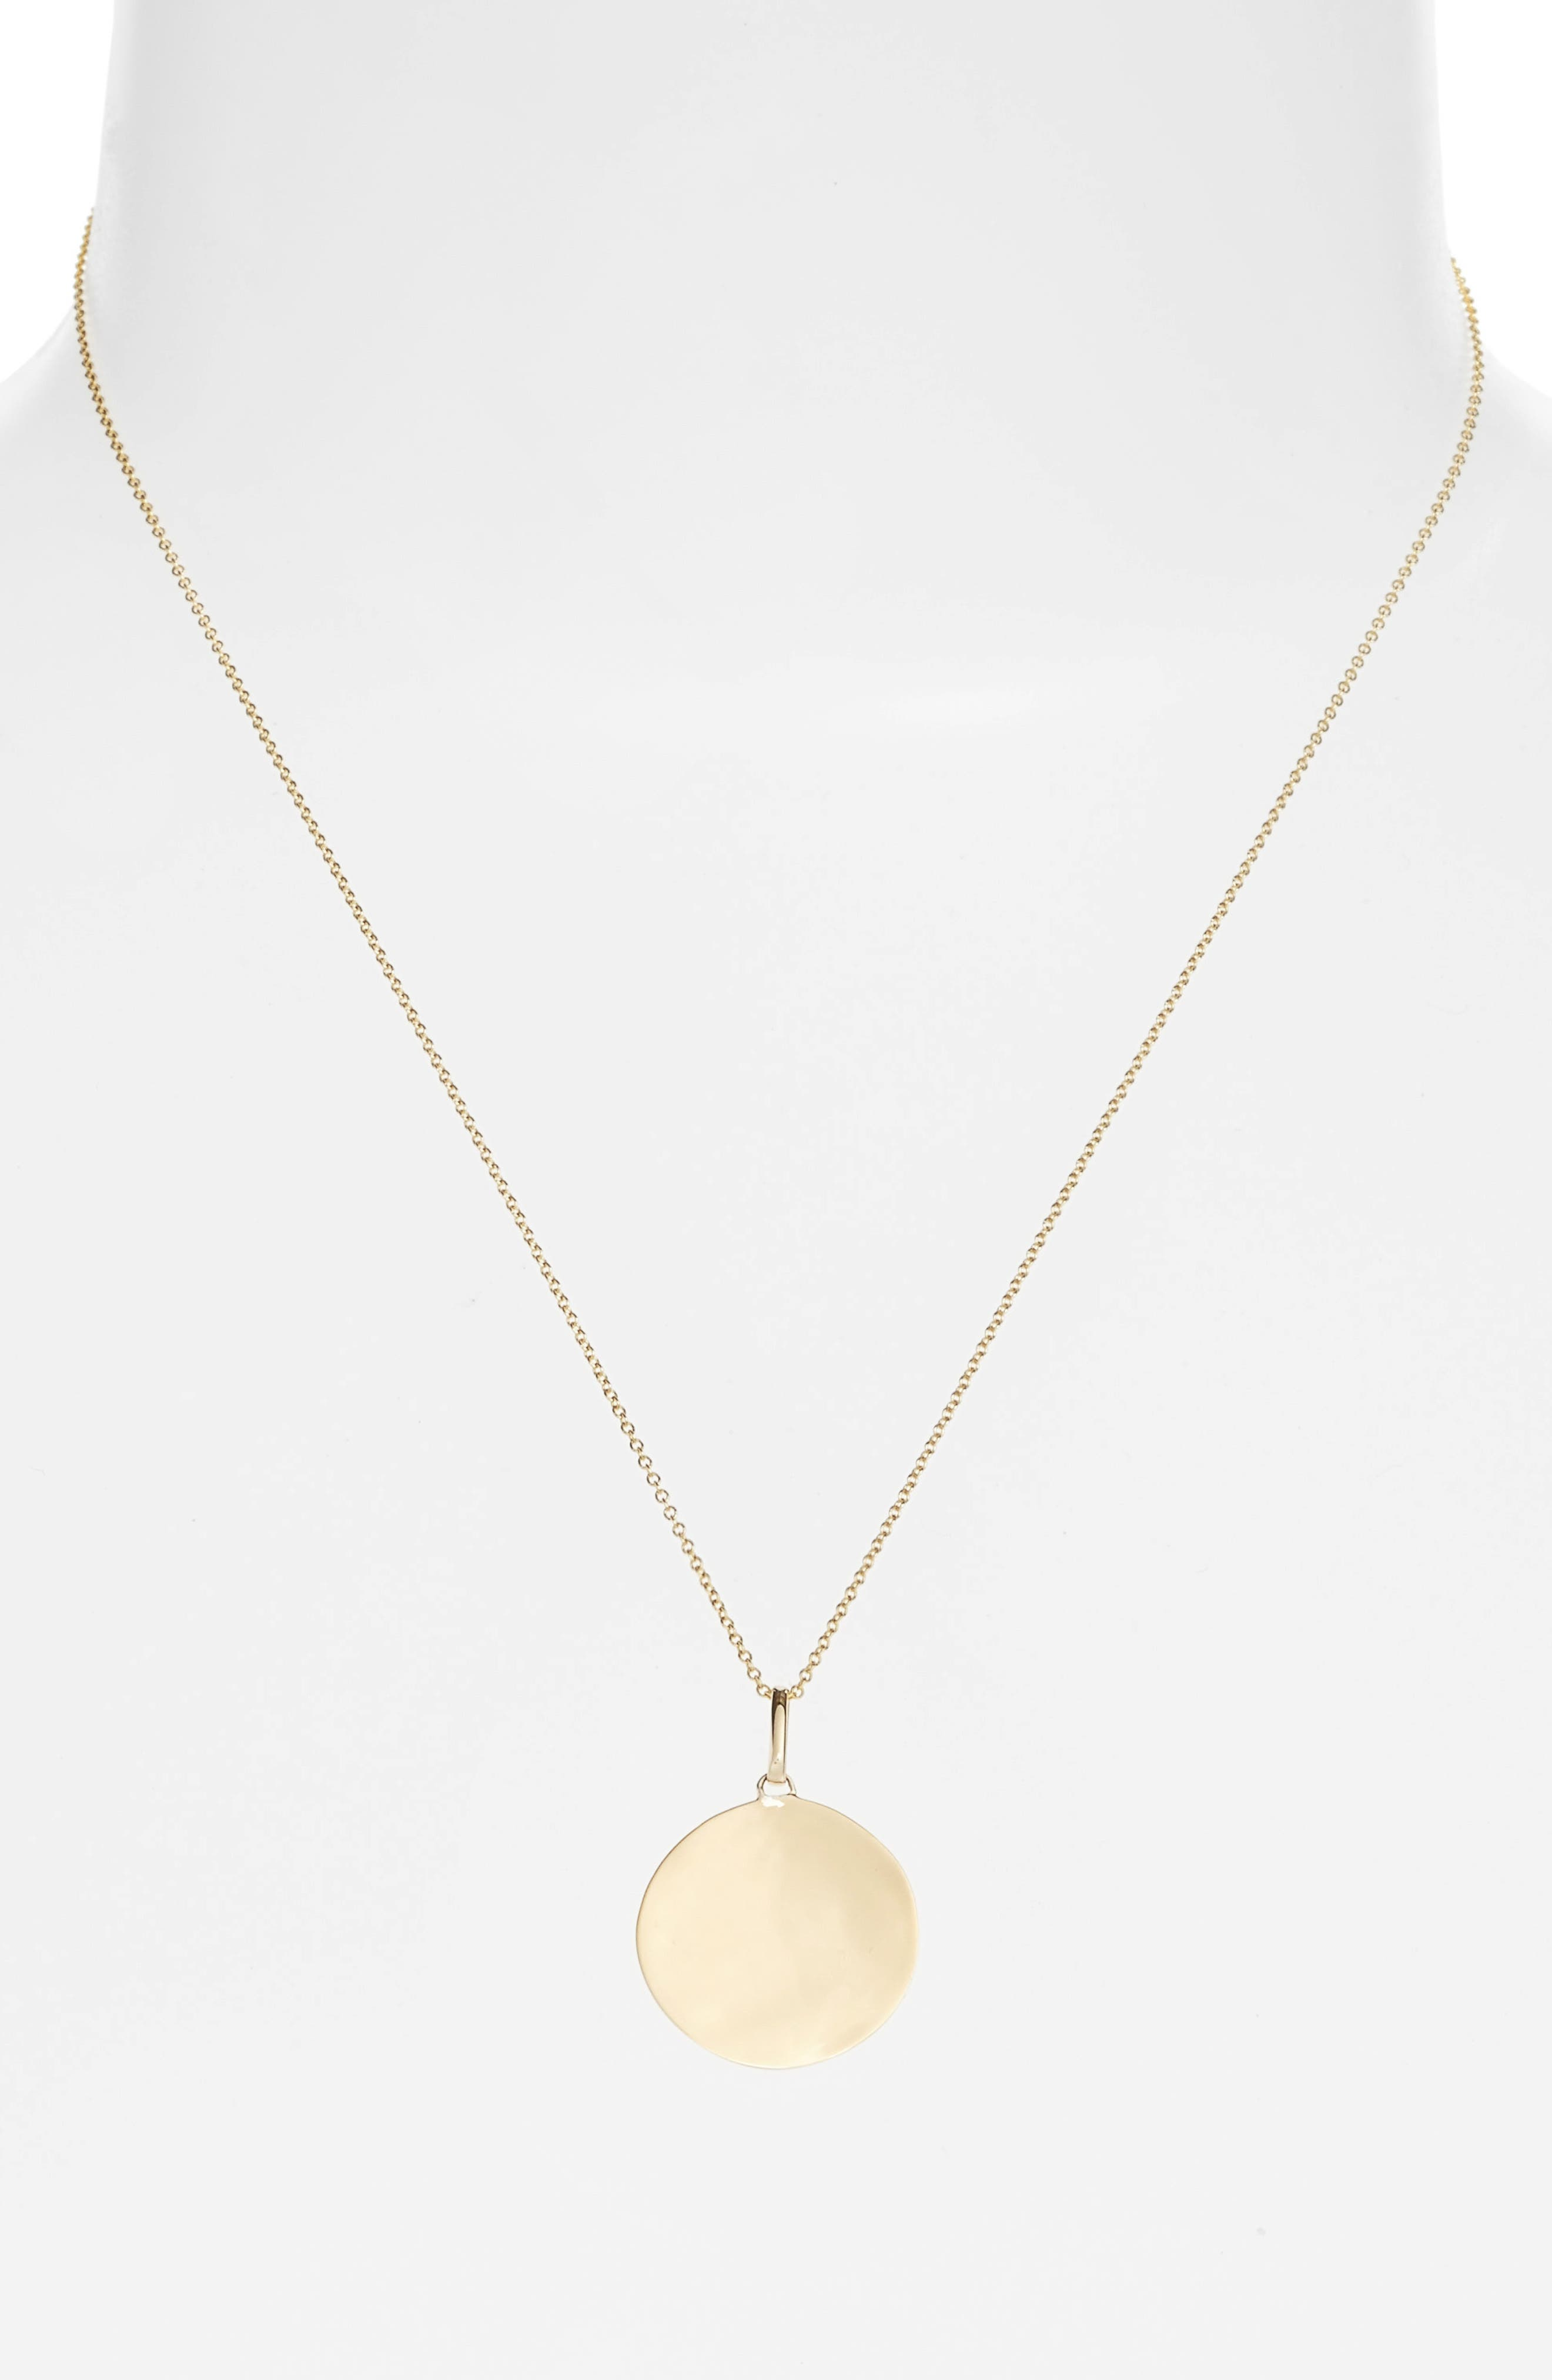 Versatile, timeless and sculptural, this luminous pendant necklace is crafted from 14-karat gold. Style Name: Bony Levy Concave Large Pendant Necklace (Nordstrom Exclusive). Style Number: 5286659. Available in stores.